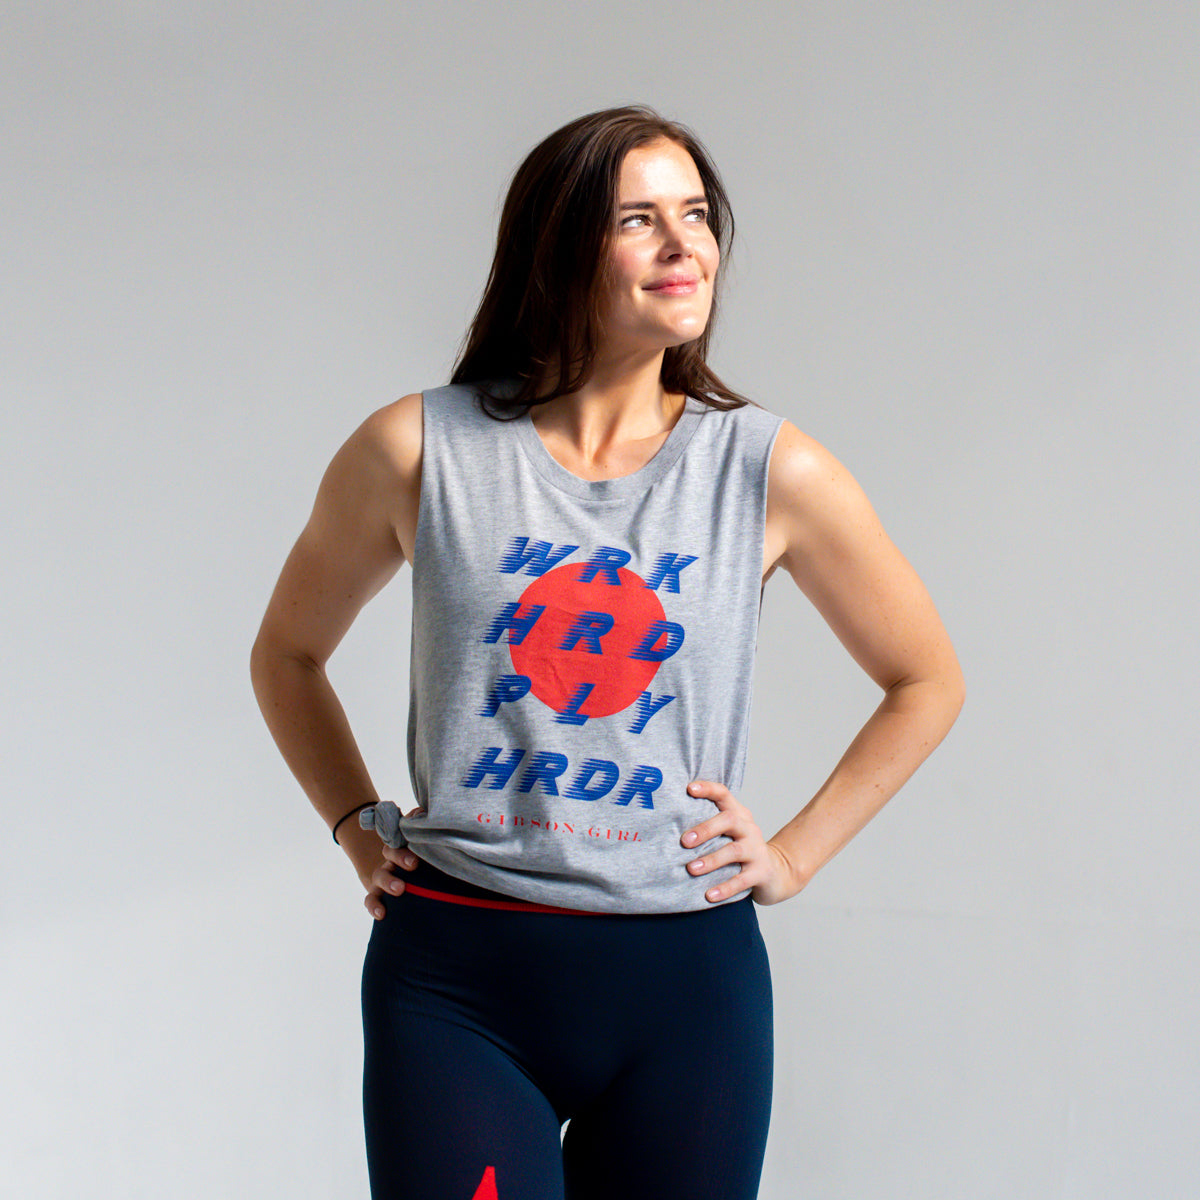 WORK HARD PLAY HARDER! Slogan Women's Workout Top - Grey Marl/Blue/Red print